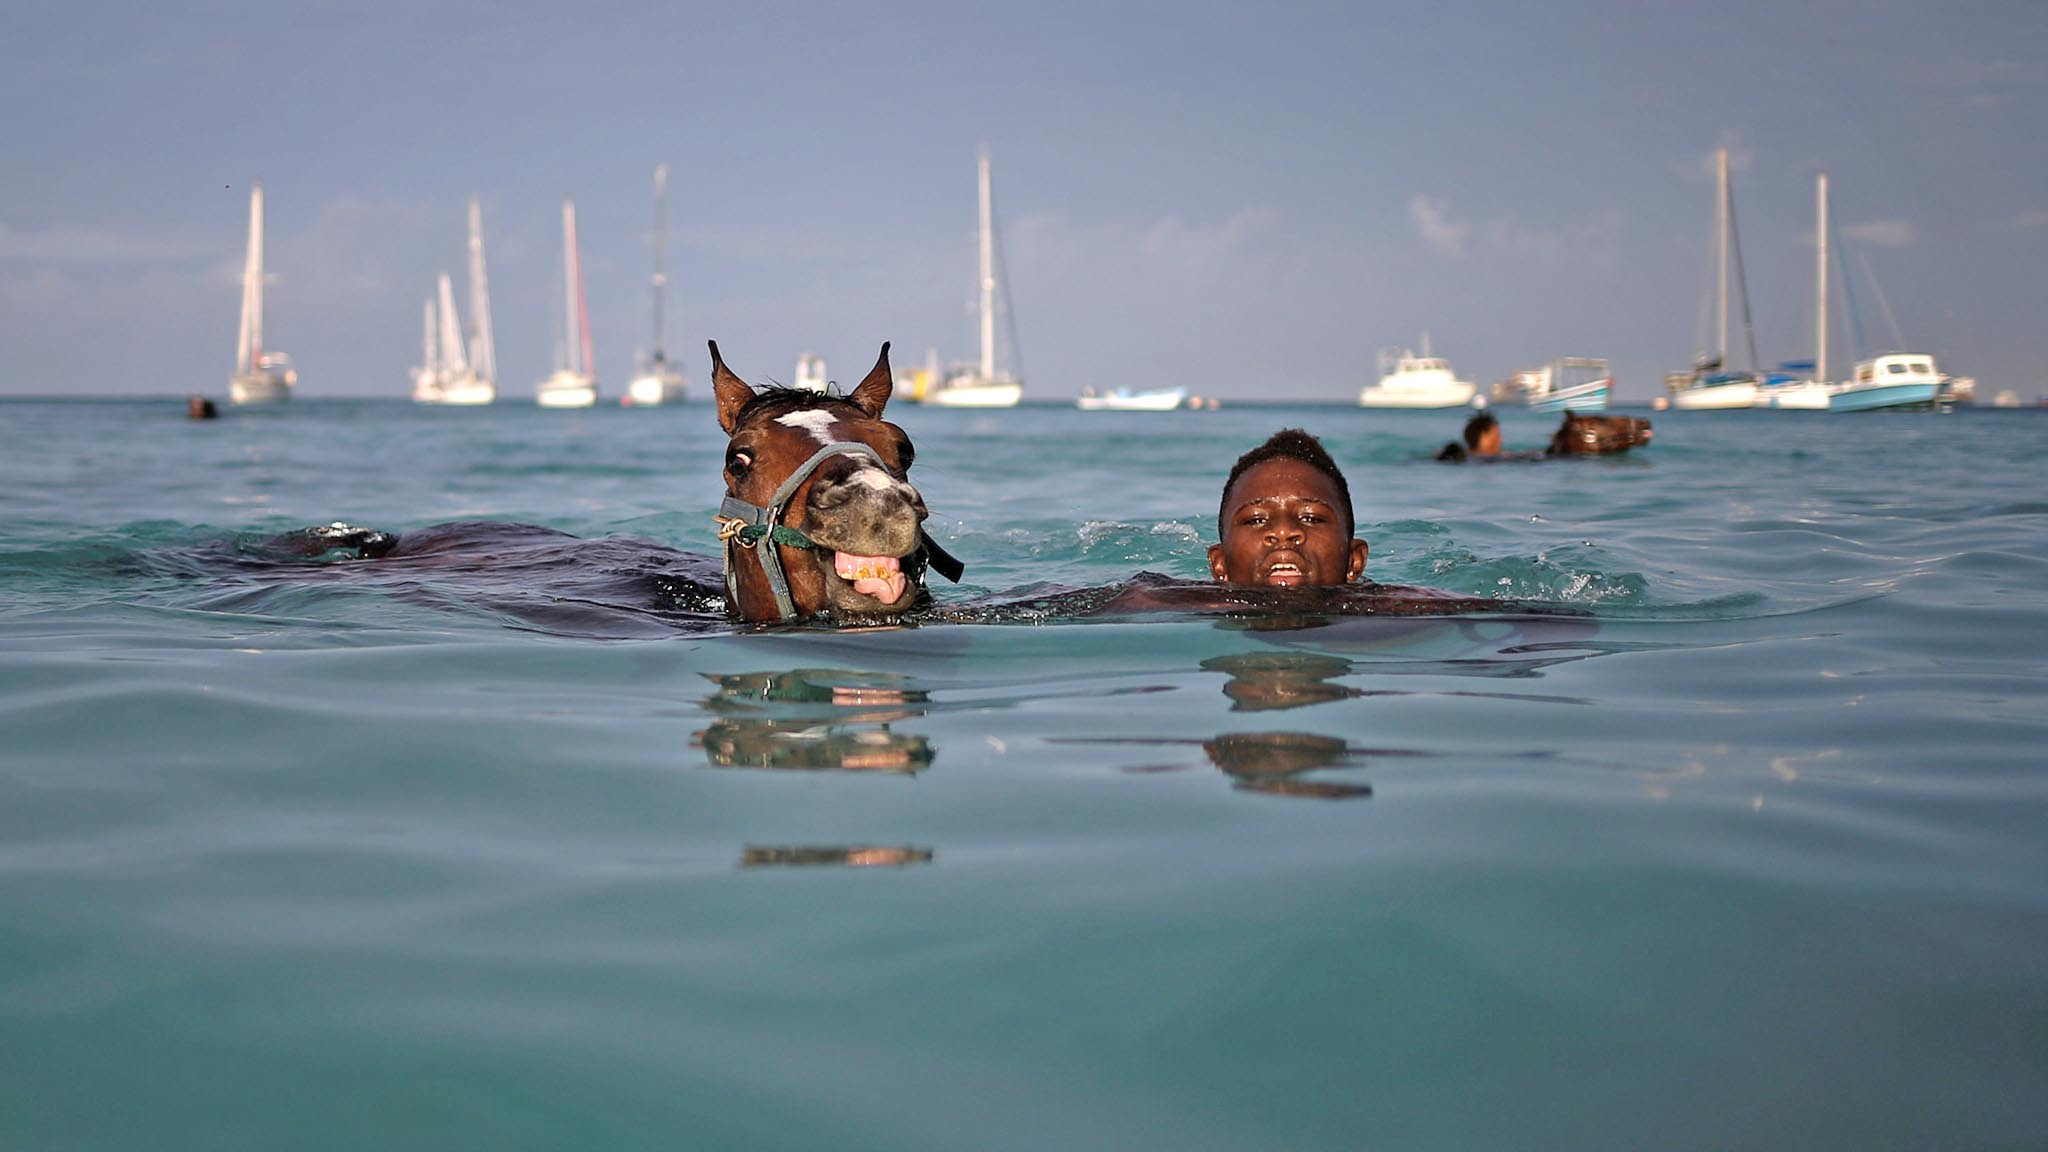 A handler swims with a horse from the Garrison Savannah in the Caribbean Sea near Bridgetown, Barbados